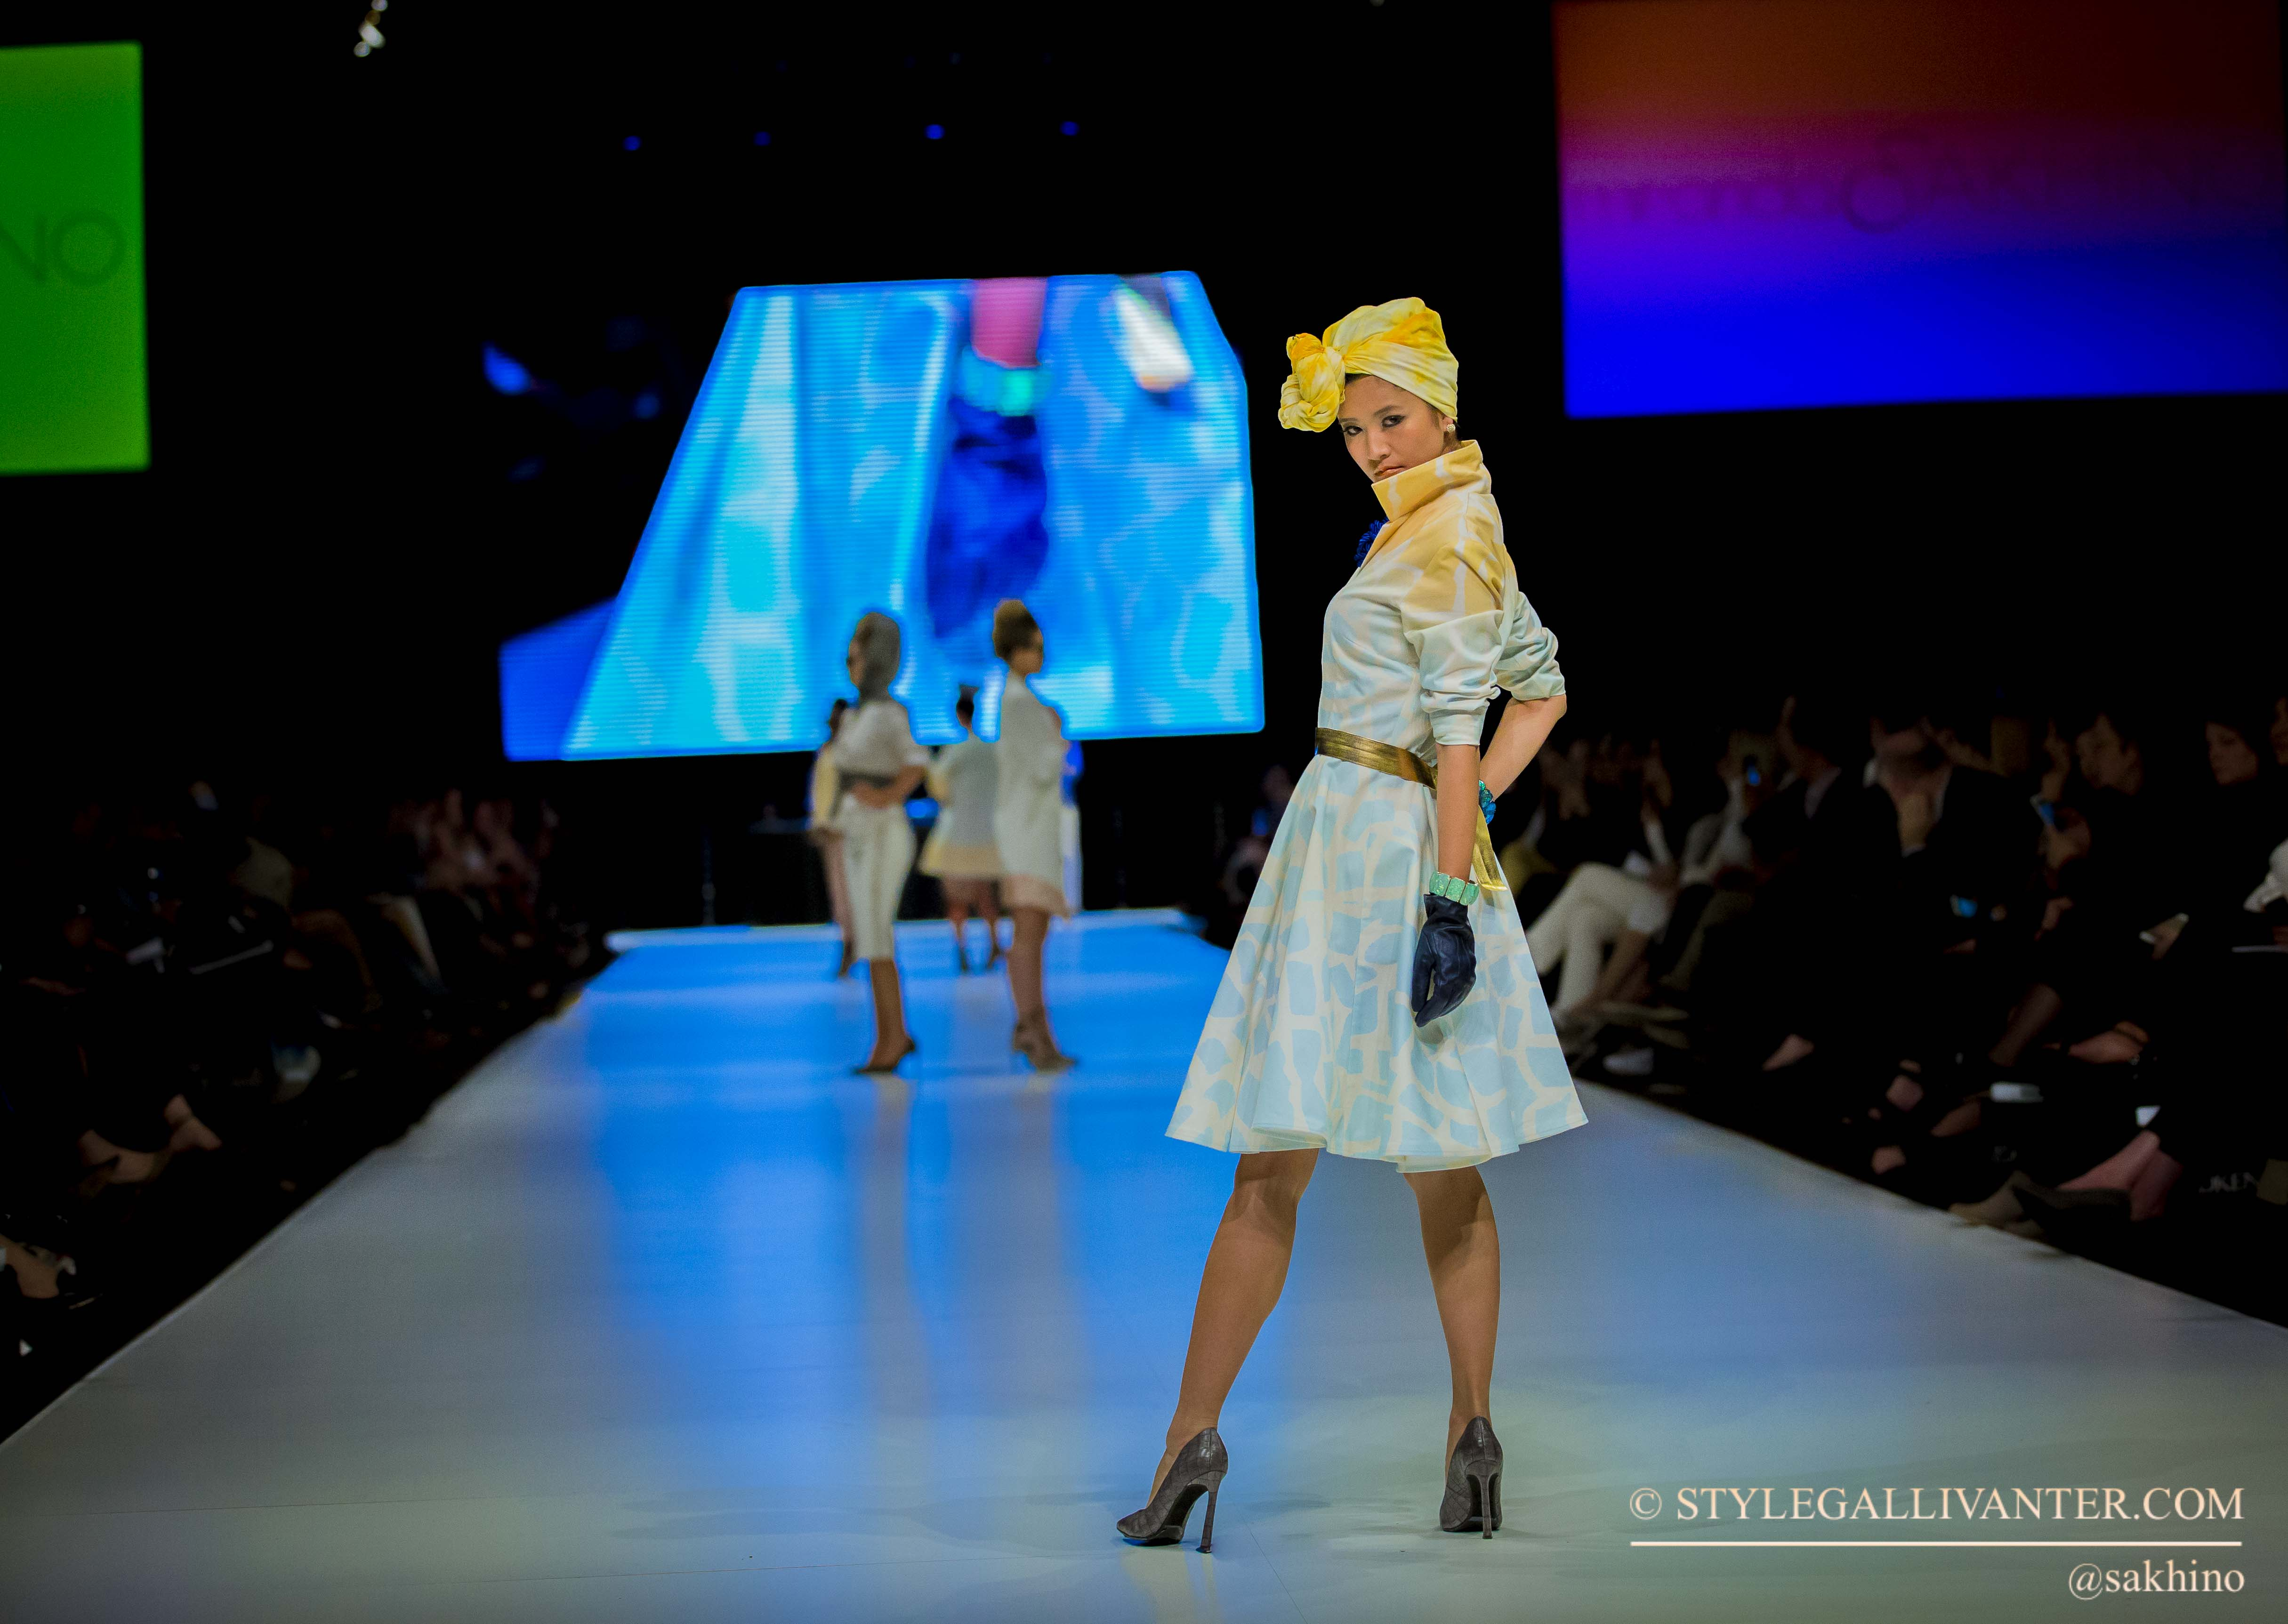 mirandaSAKHINO-copyright-2015_not-to-be-used-without-permission_mirandasakhino-runway-2015_mirandasakhino-fashfest-miranda-sakhino-resort-collection_miranda-sakhino-fashfest-2015